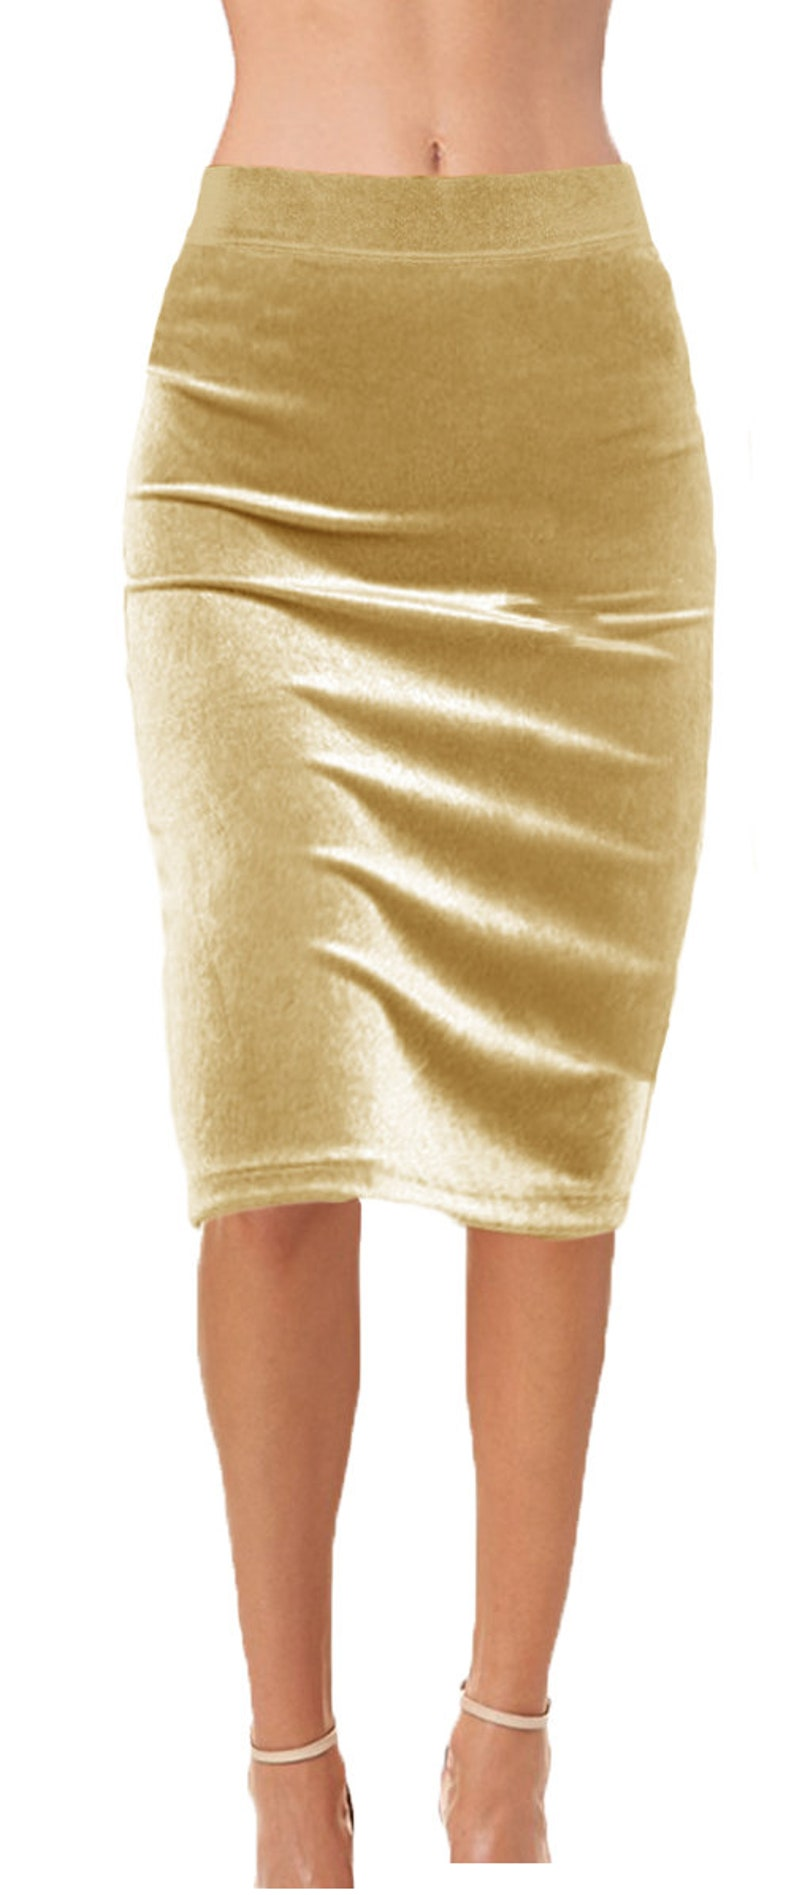 Stretch Velvet Pencil Skirt with Flat Elastic Waistband  Special Occasion  Ooh la la